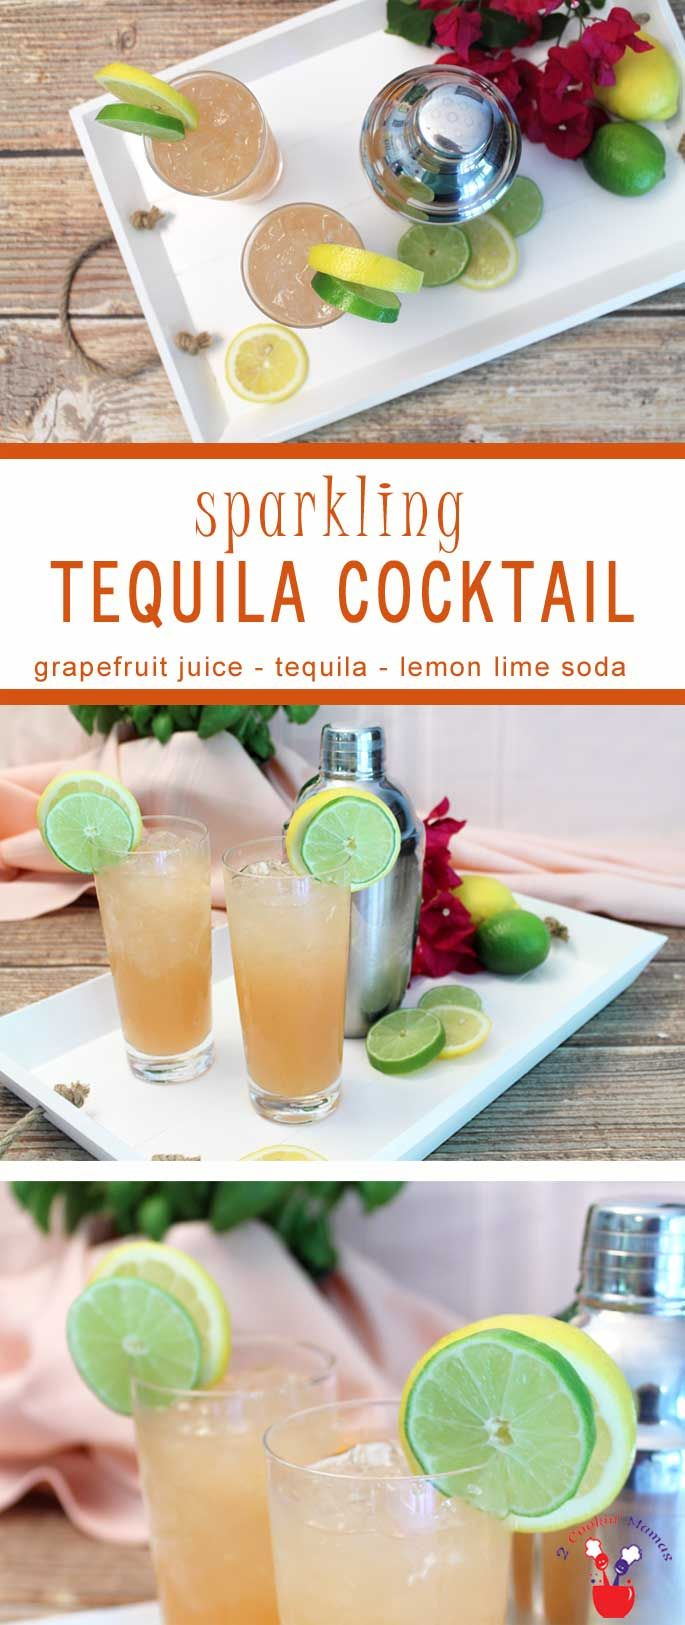 Our Sparkling Tequila Cocktail is a refreshingly tart drink based on the Paloma. Grapefruit juice, tequila & lemon lime soda make this a tropical delight. via @2CookinMamas